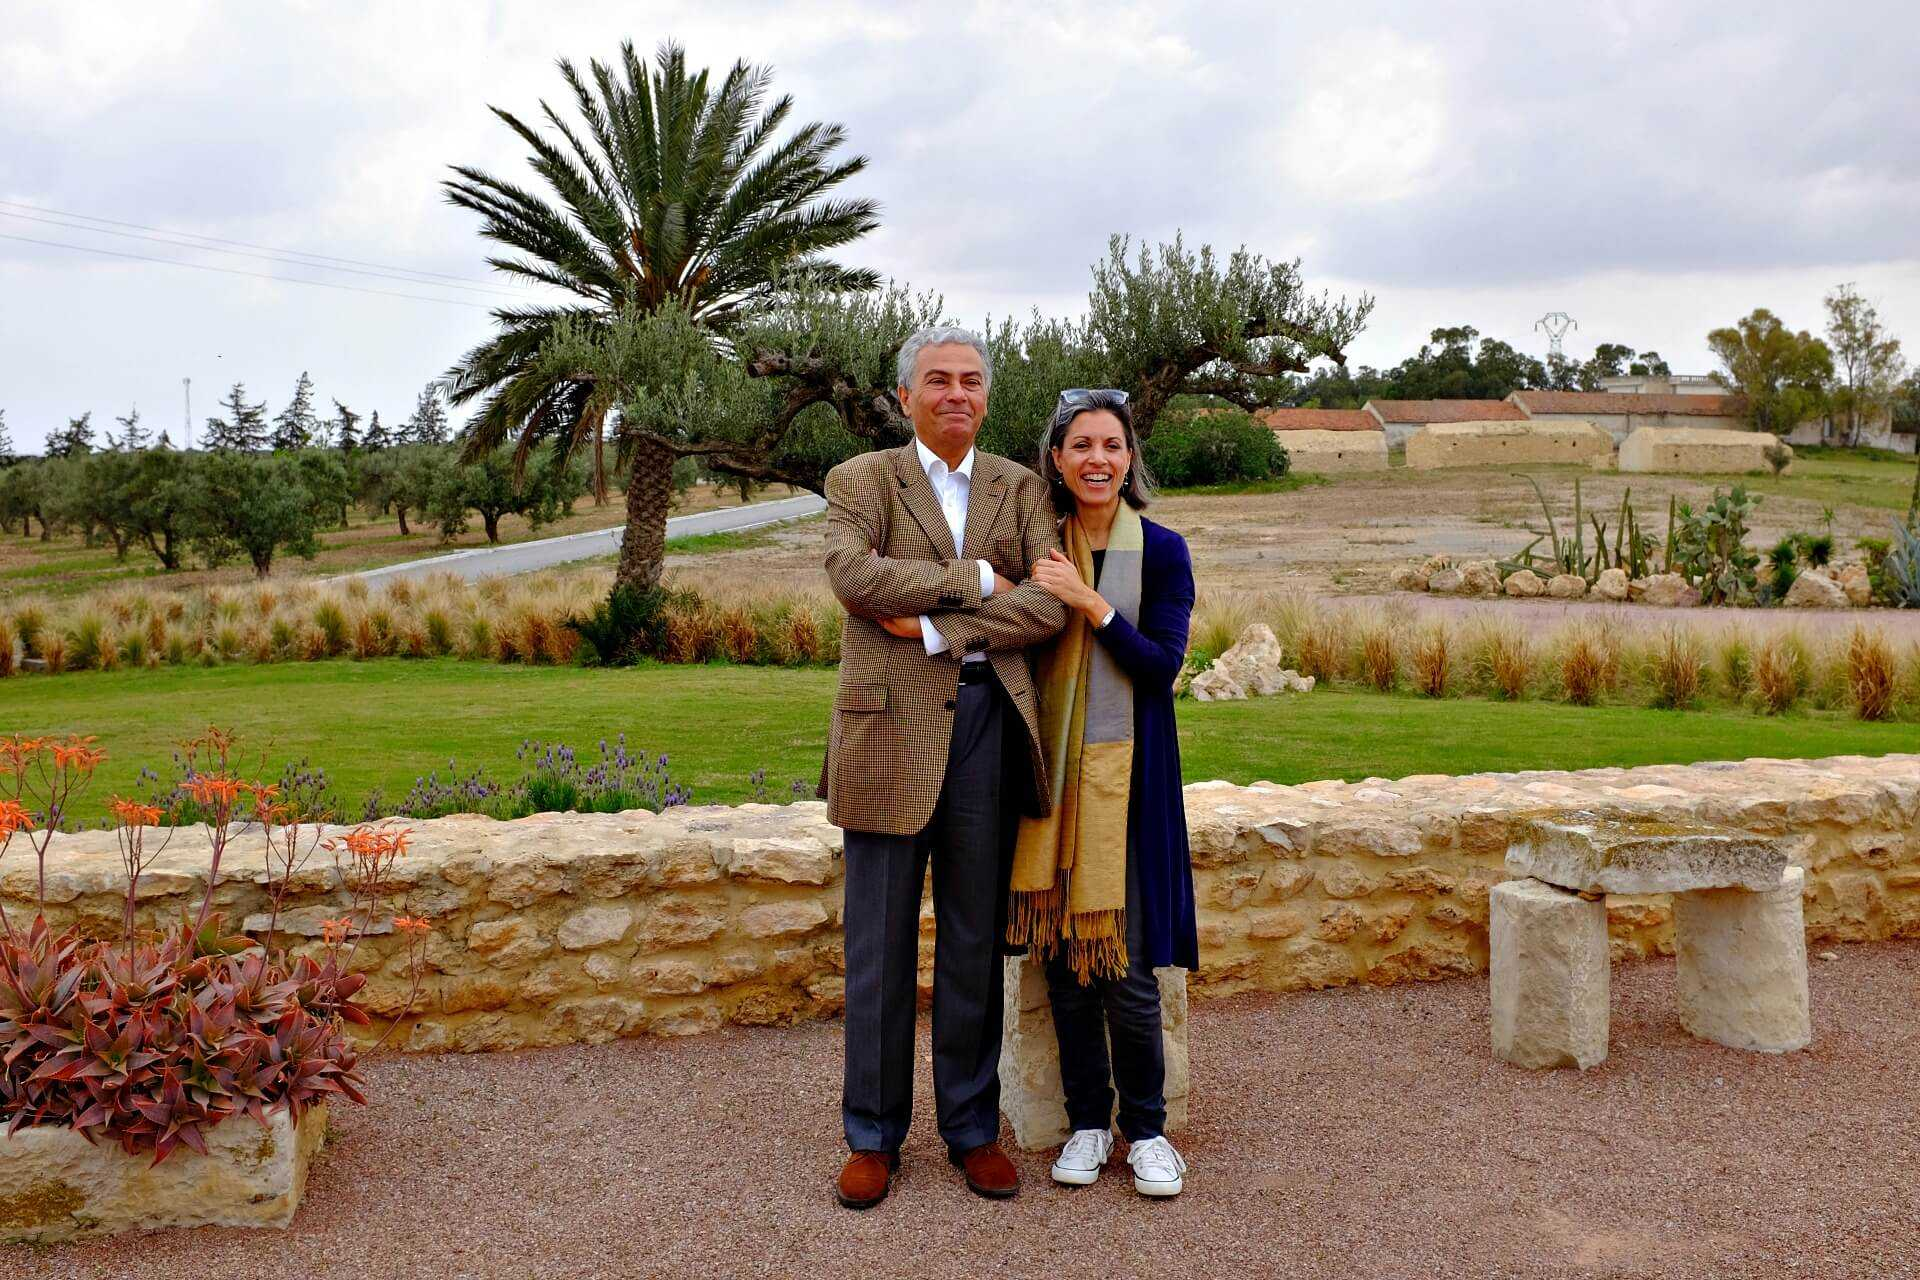 tunisian-producers-see-promise-in-olive-oil-tourism